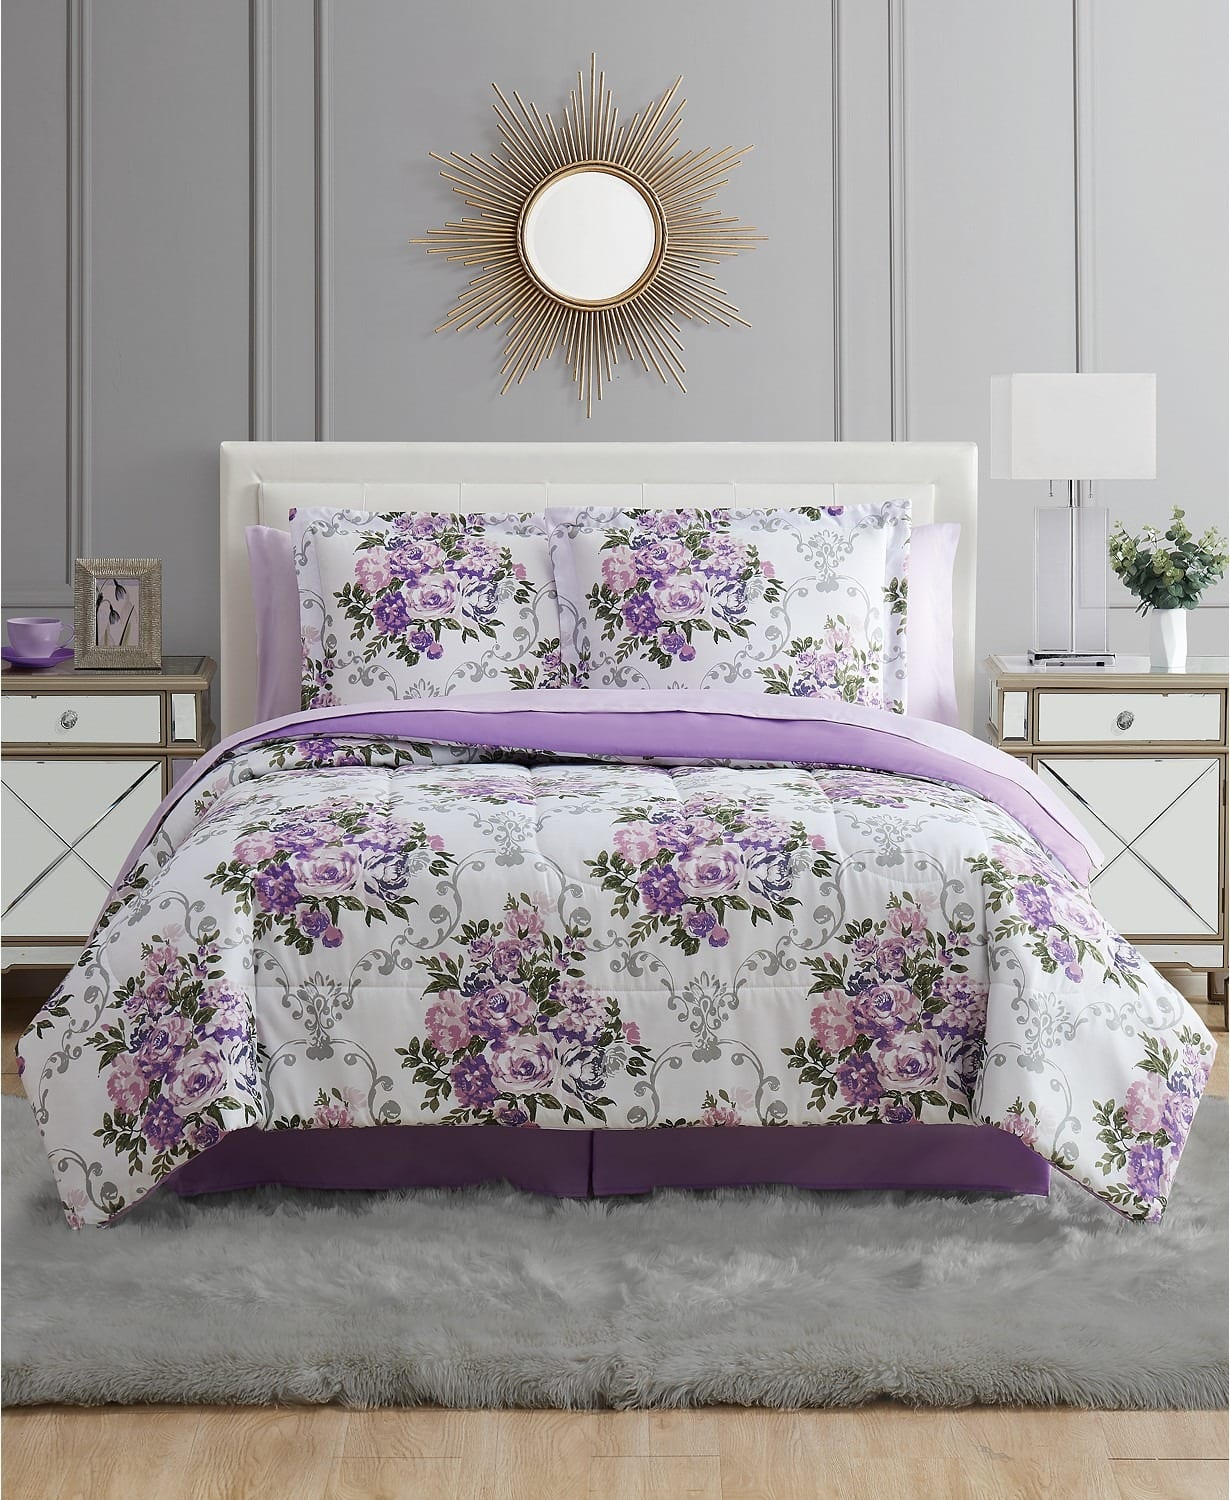 8-Piece Full or Queen Comforter Sets w/ Sheets (various) $28, 6-Piece Twin Comforter Sets w/ Sheets (various) $28 + Free Shipping